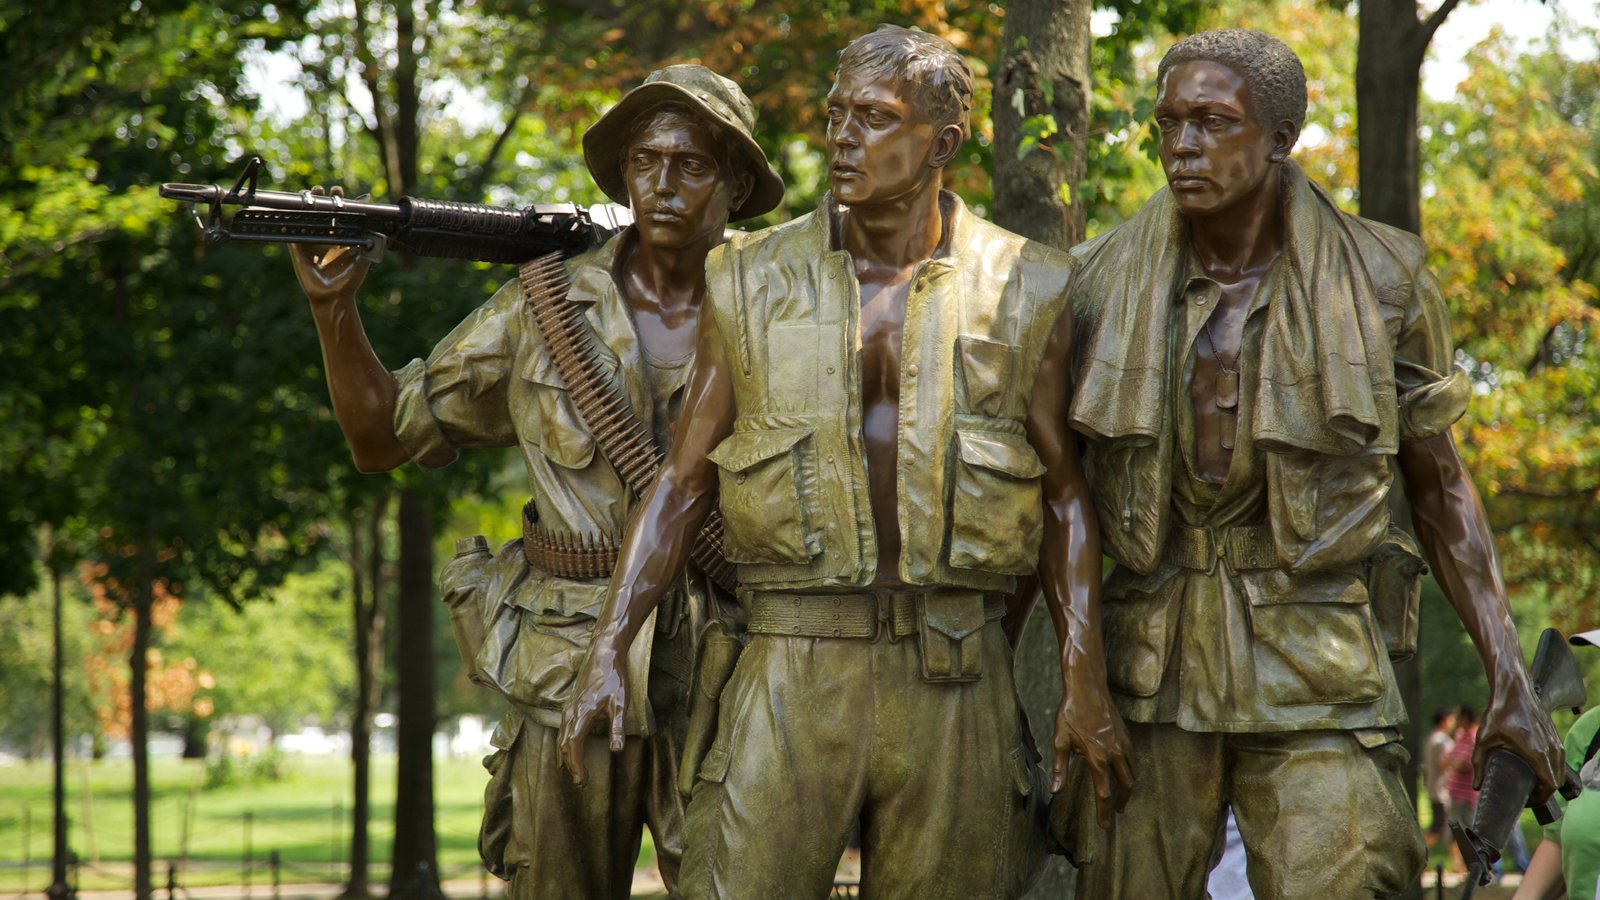 Vietnam Veterans Memorial featuring a statue or sculpture, a memorial and military items